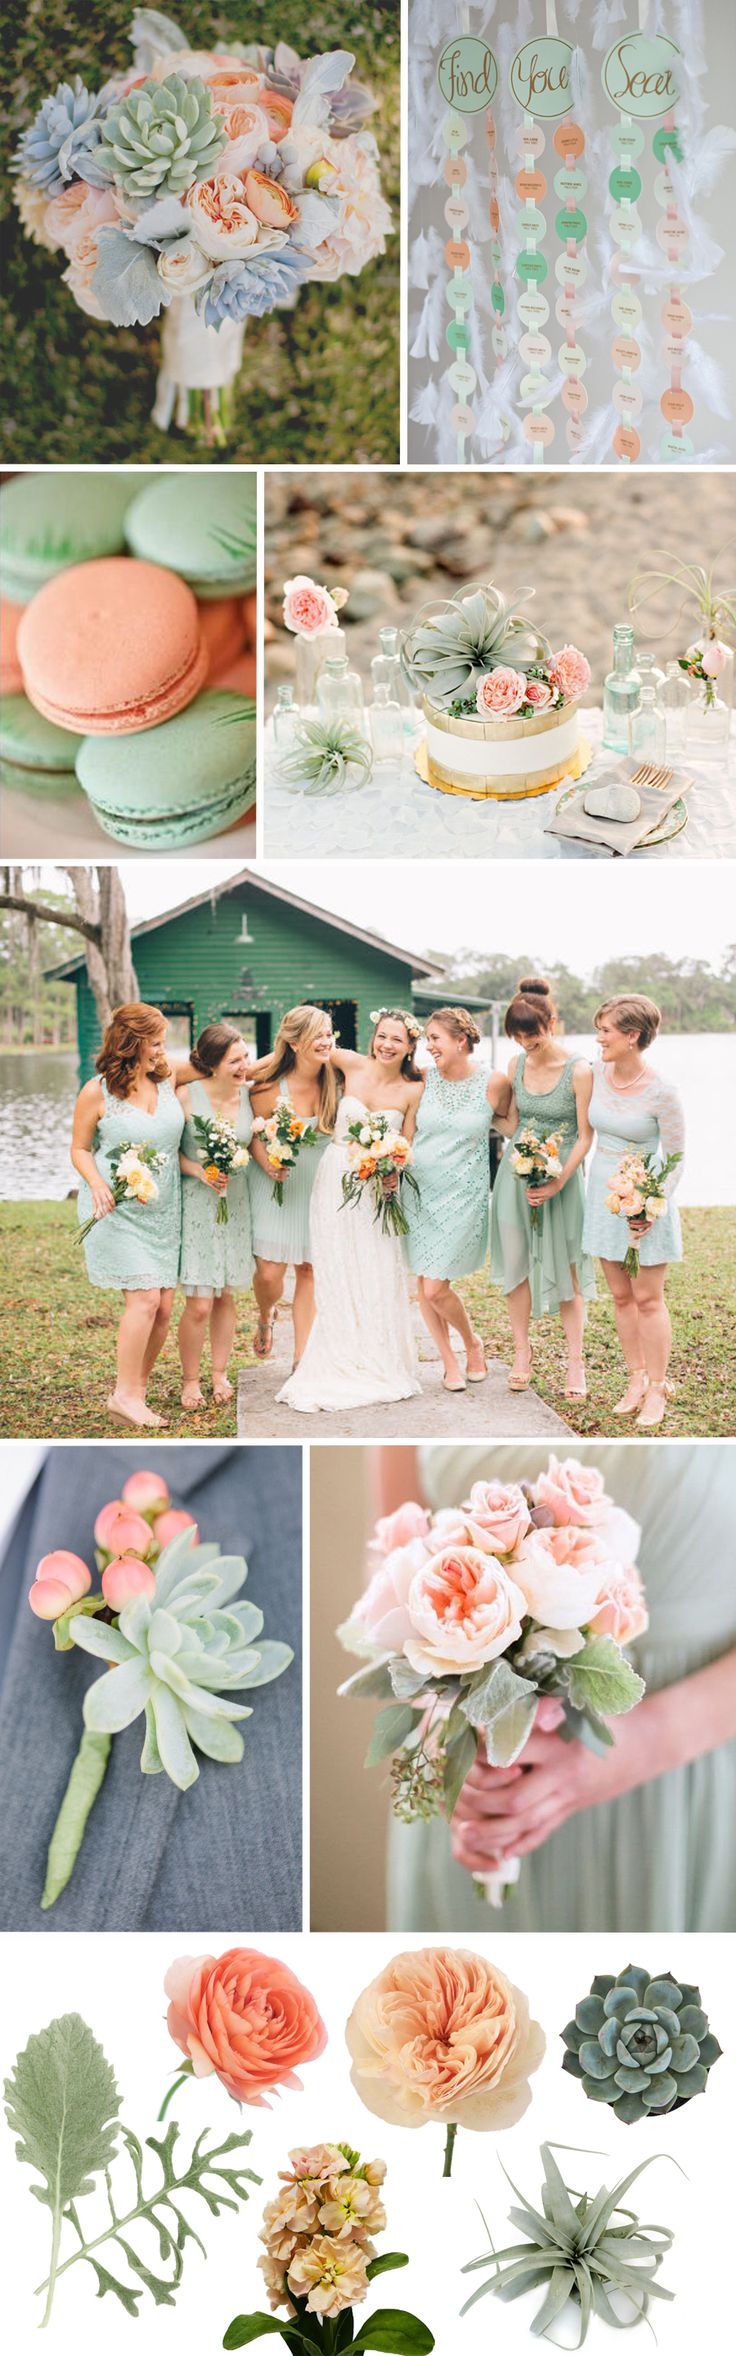 FiftyFlowers Peach & Sage Wedding Inspiration